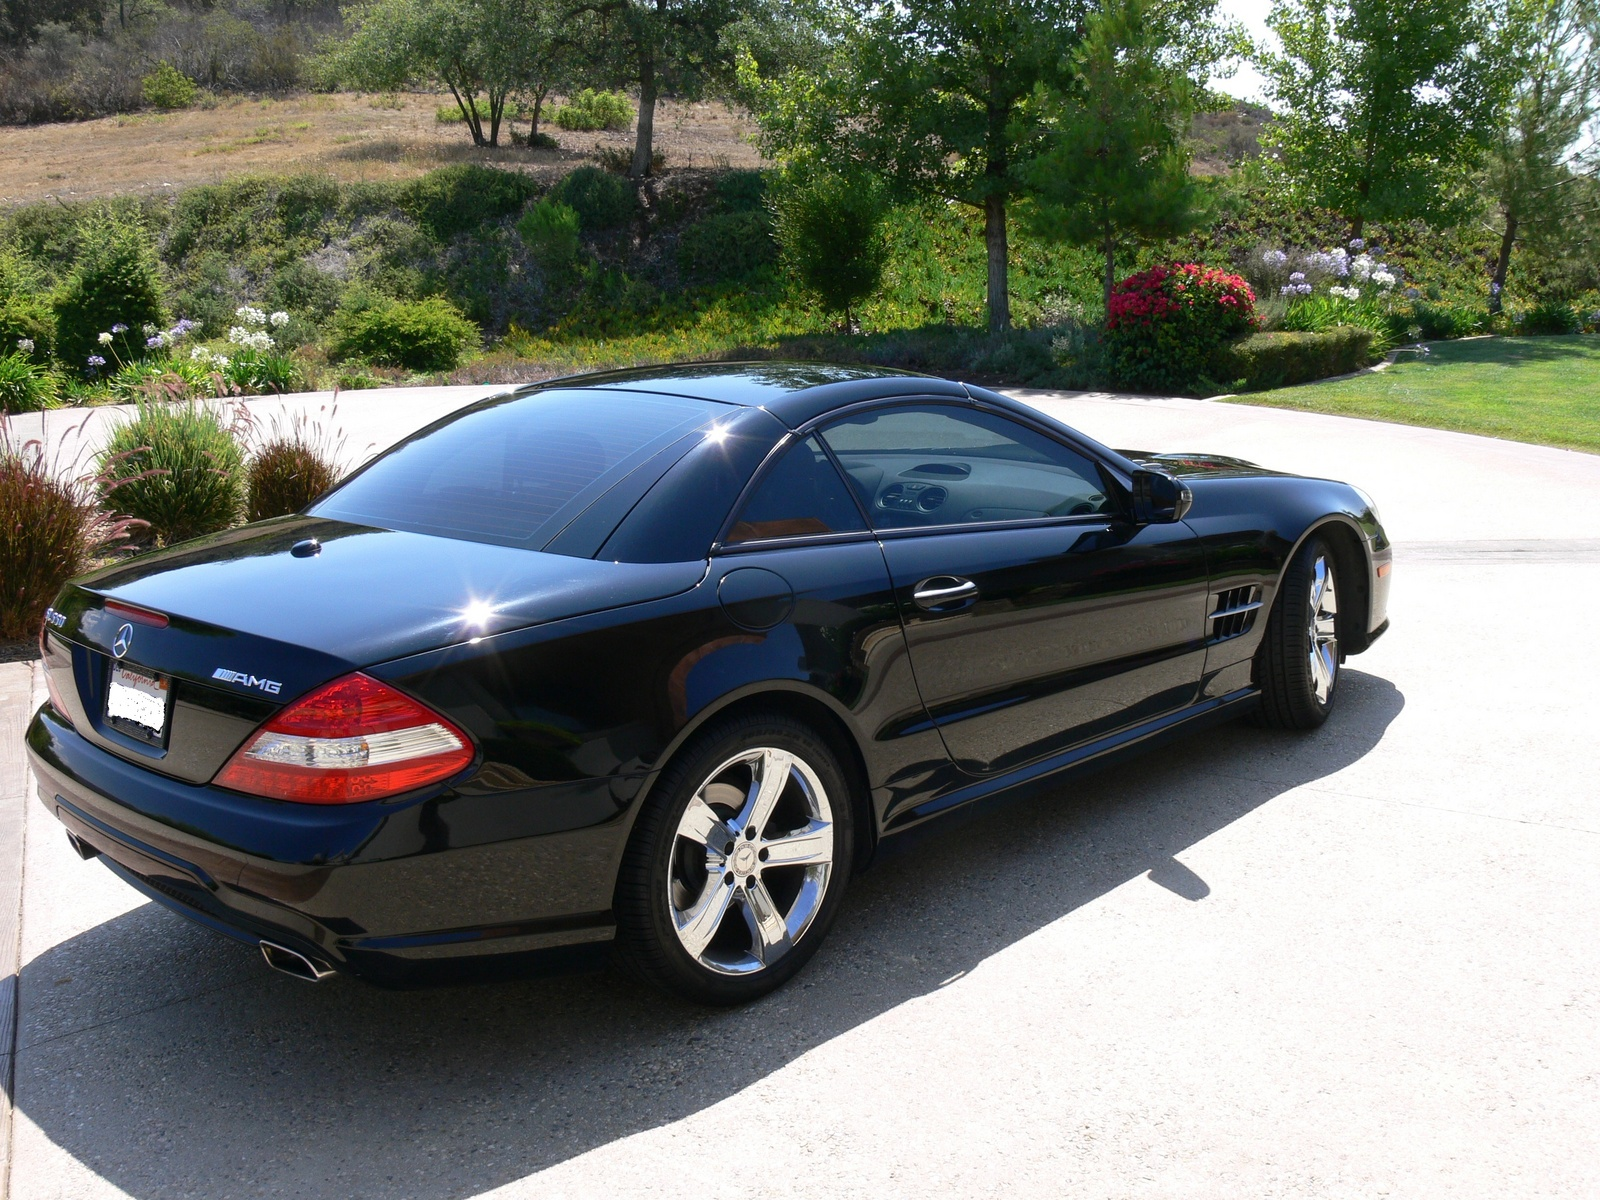 Picture of 2009 mercedes benz sl class sl550 roadster for 2009 mercedes benz roadster